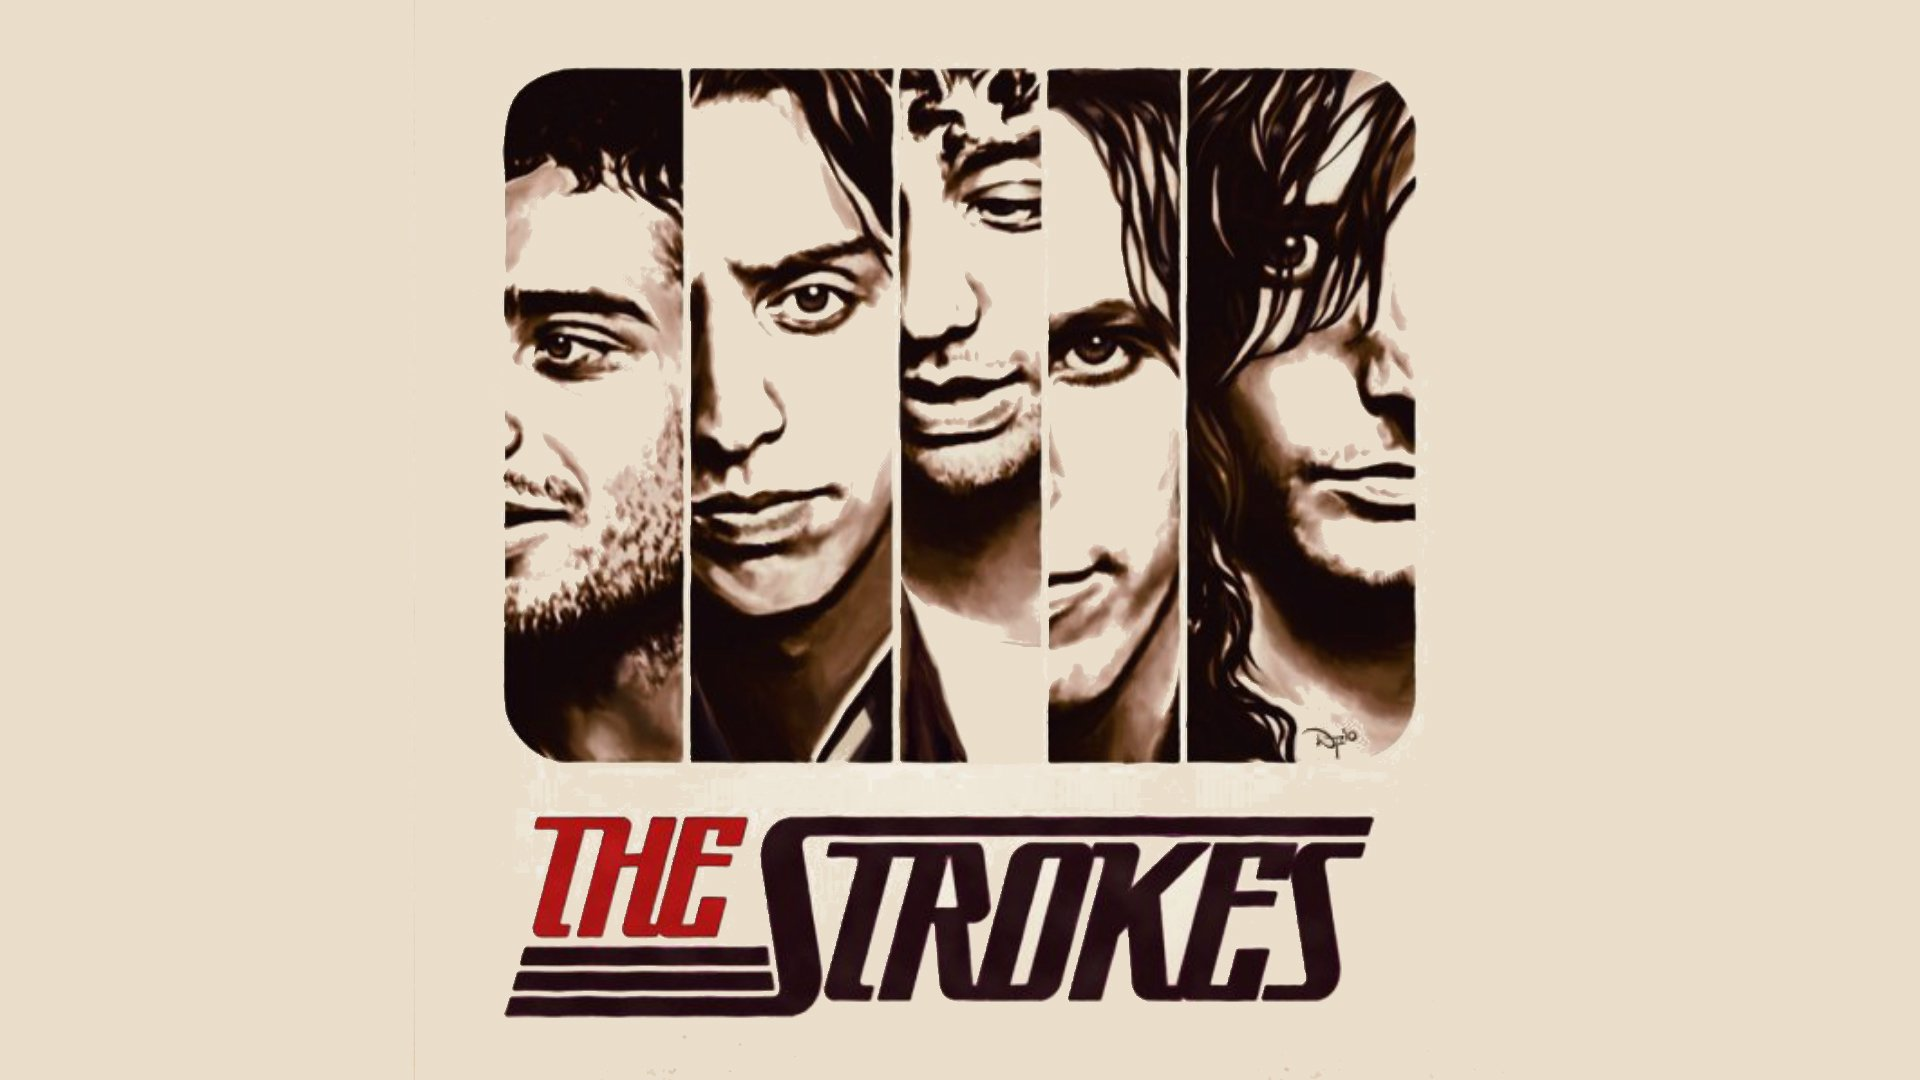 9 the strokes hd wallpapers background images wallpaper abyss the strokes hd wallpaper background image id559575 thecheapjerseys Image collections